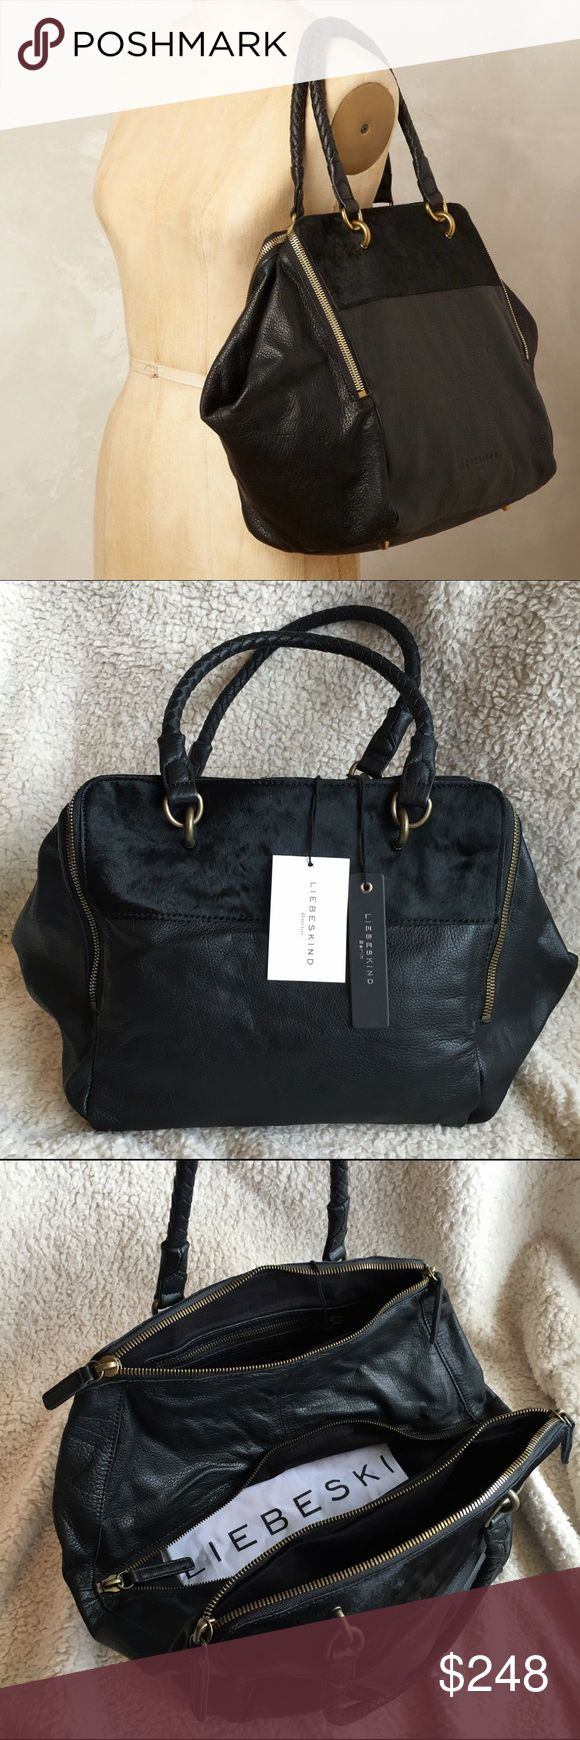 """NWT: Liebeskind Black Kayla Pony Satchel NWT: Liebeskind Berlin black genuine leather Kayla satchel with genuine calf hair detail on the front, bronze hardware, dual braided handles, multiple zip-top compartments, metal feet, and dust bag. No crossbody strap. Size: Approximately 12""""H x 19""""L x 6""""D, 7"""" strap drop. Brand new with tags. Liebeskind Bags Satchels"""